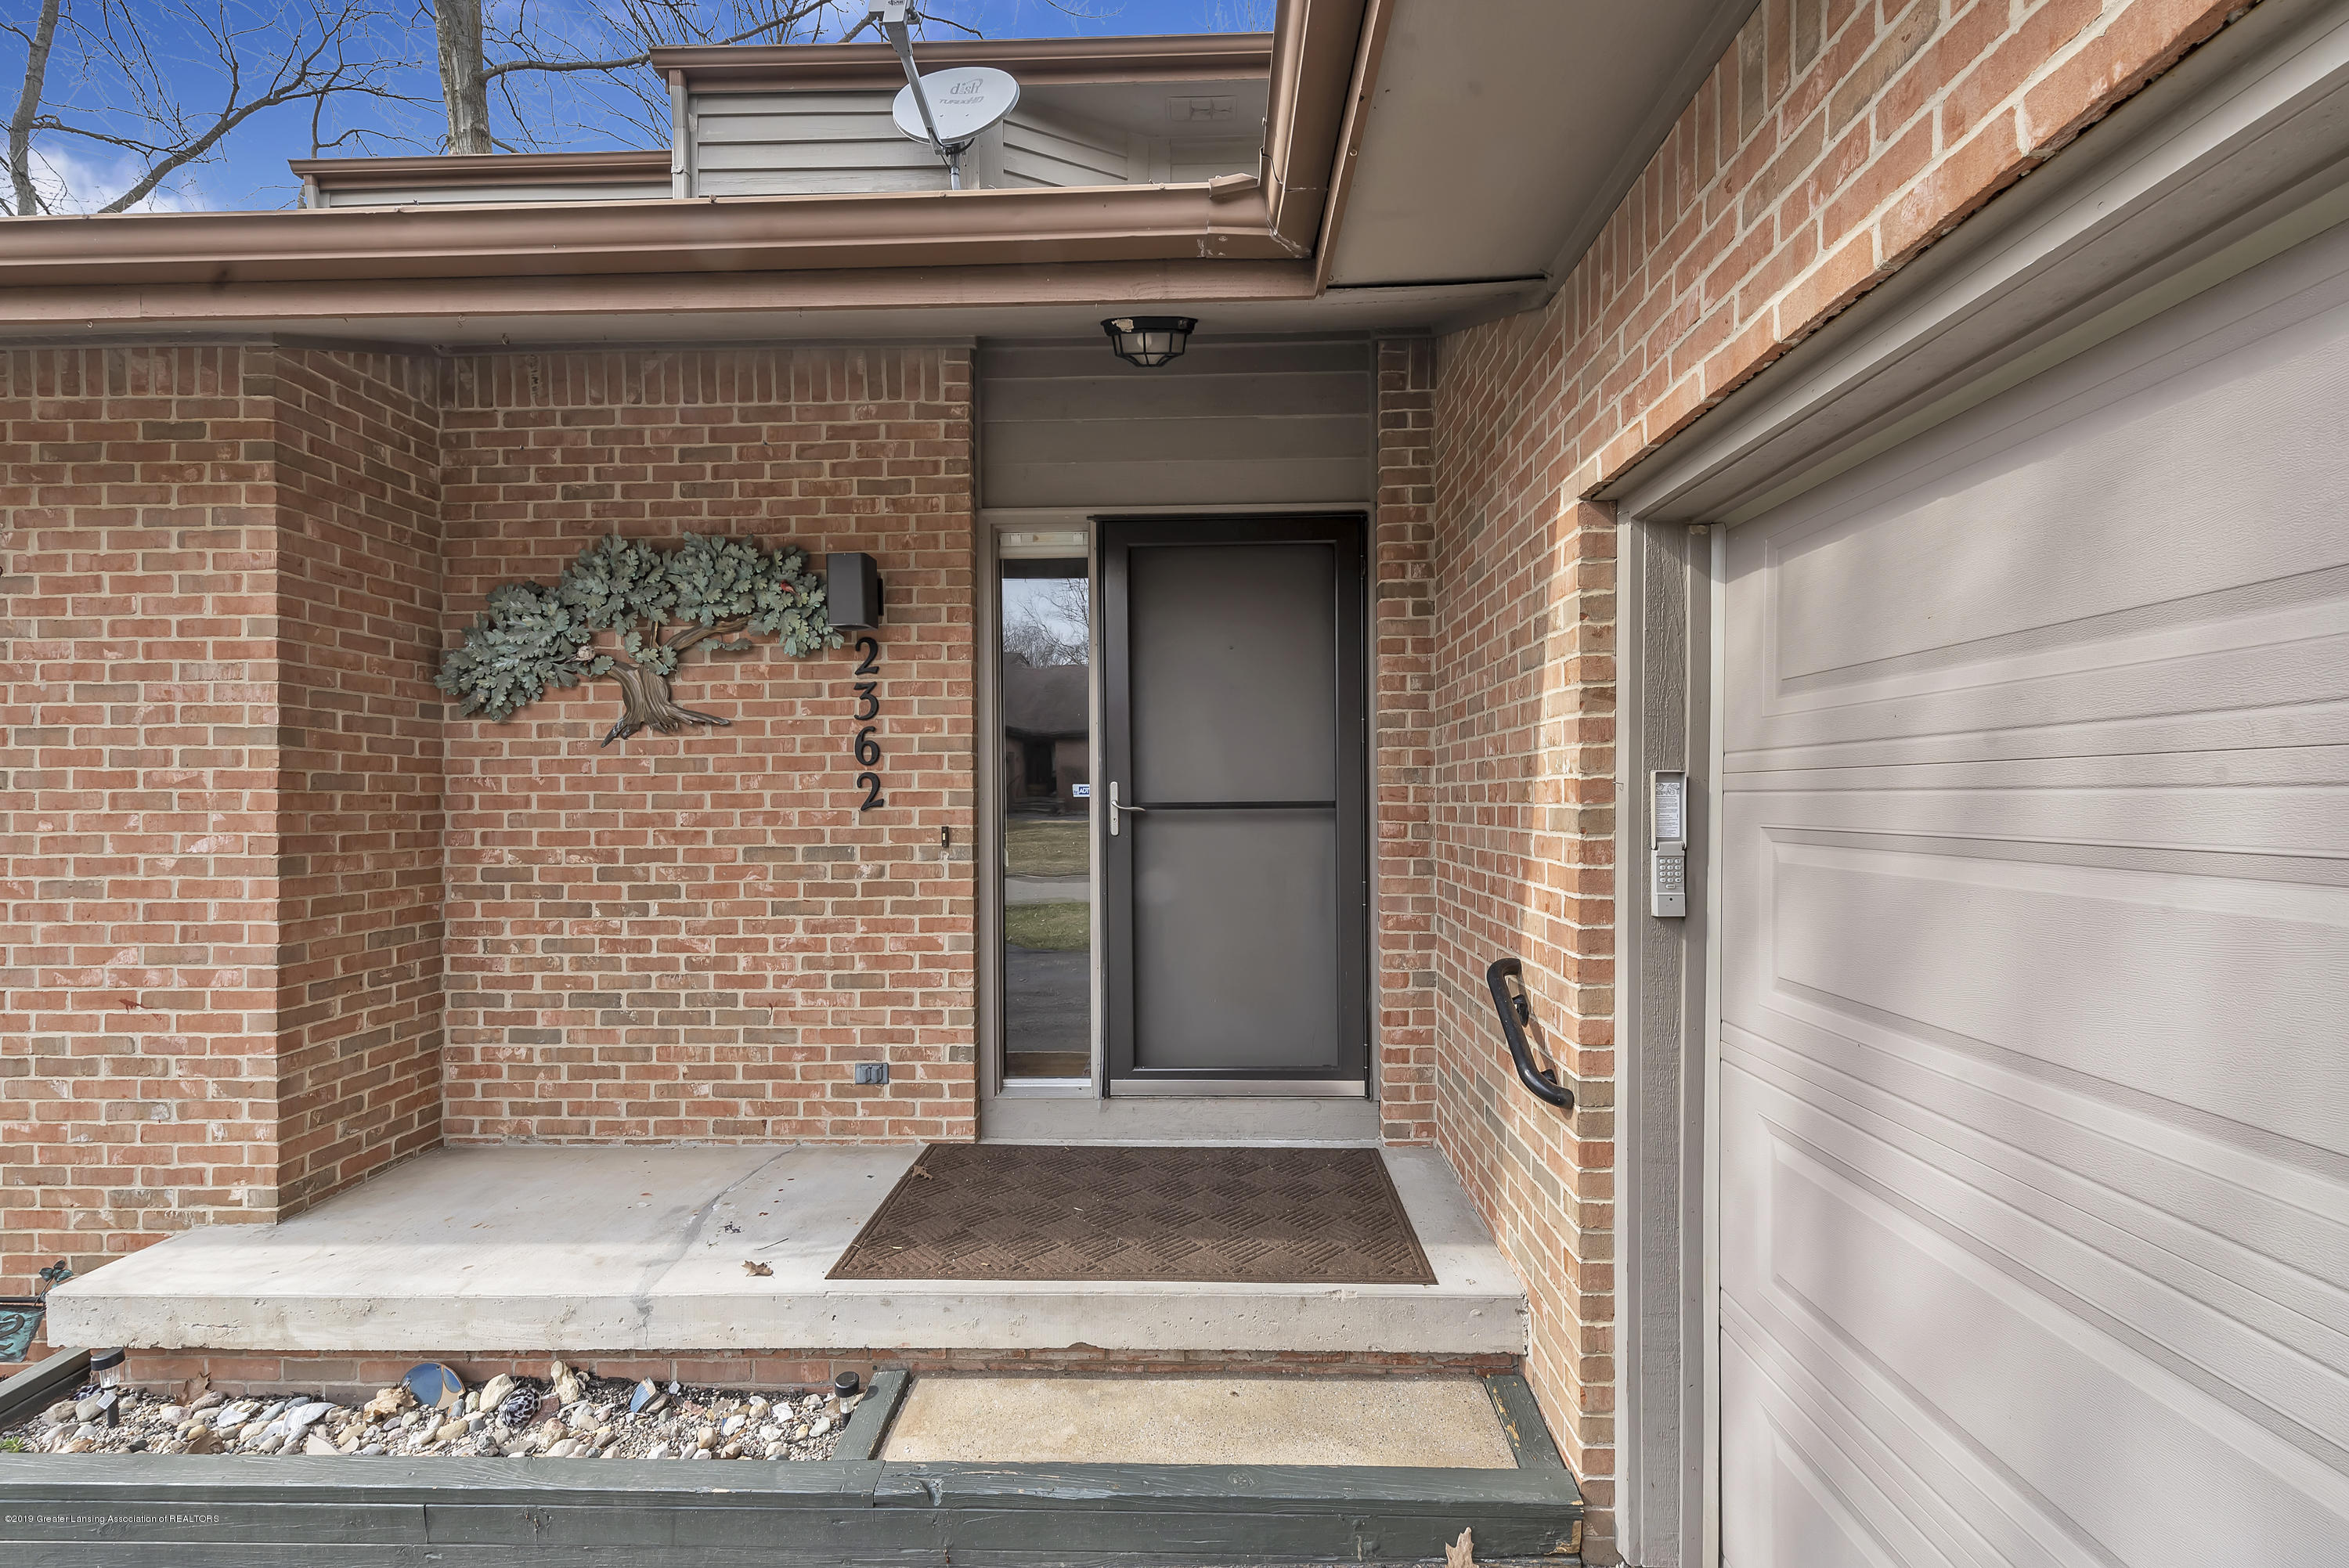 2362 Emerald Forest Cir - 2362-Emerald-Forest-Circle-East-Lansing- - 2